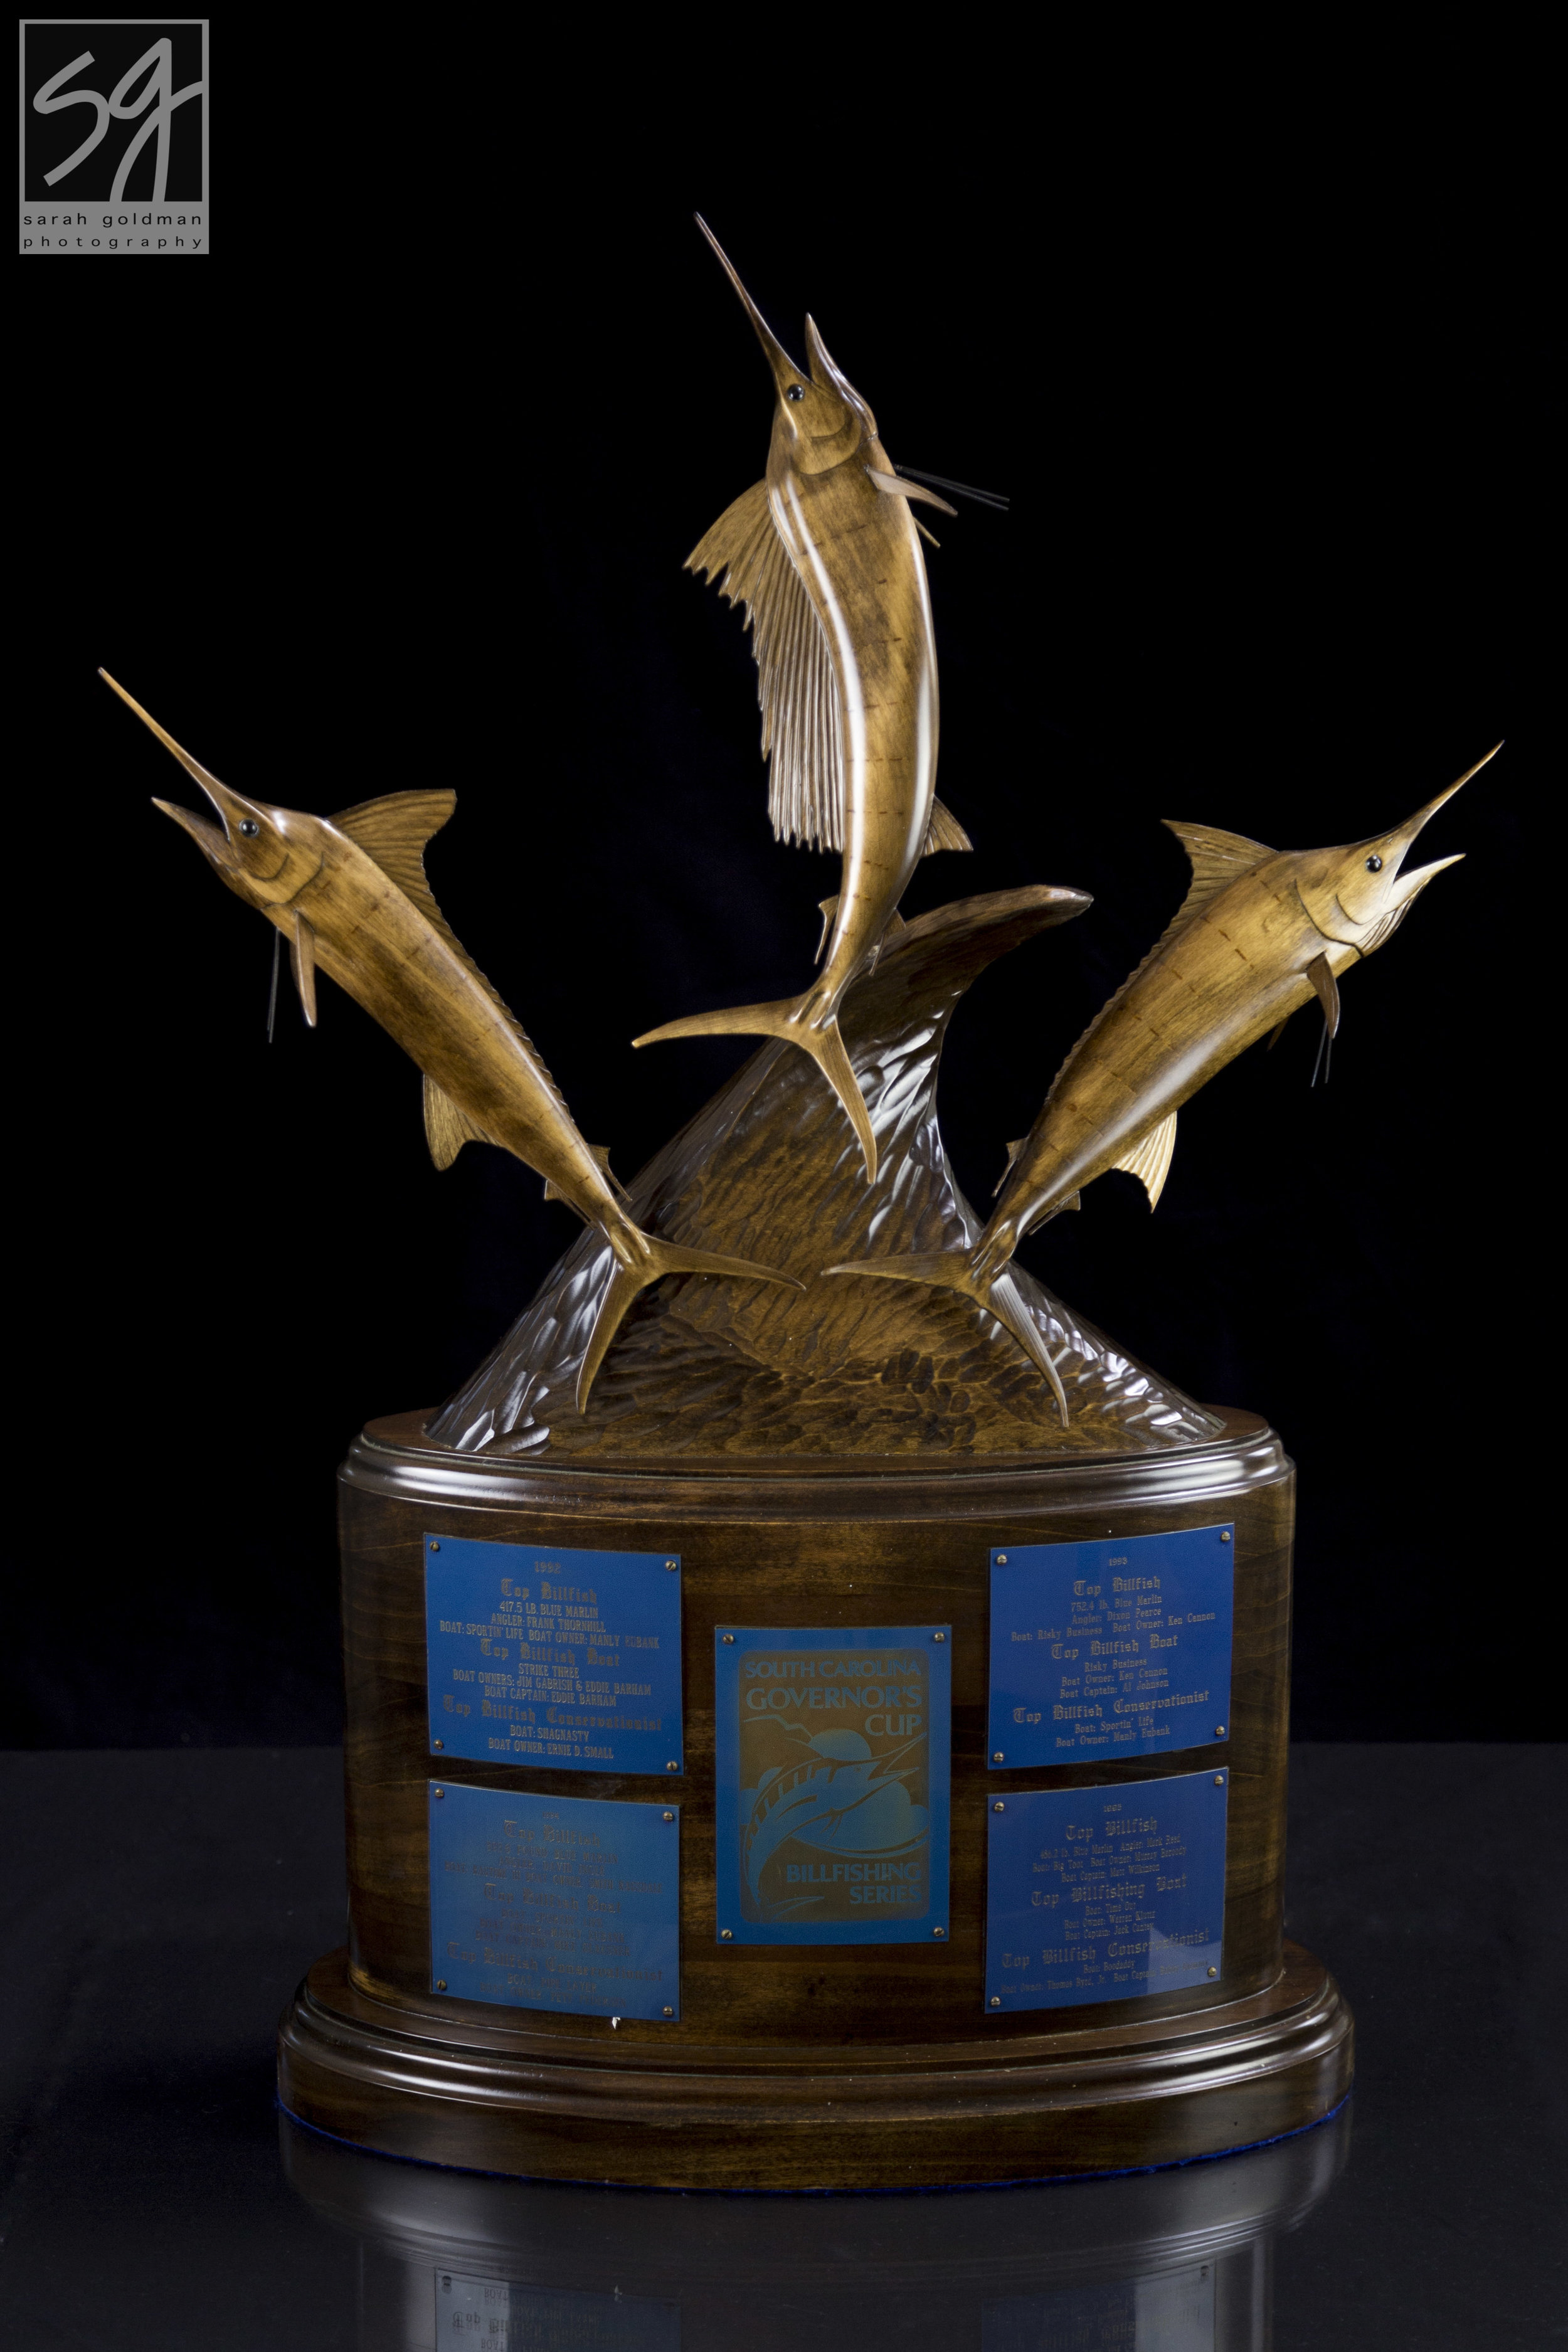 The perpetual trophy awarded annually to the top boat of the Governor's Cup_Sarah Goldman Photography.jpg